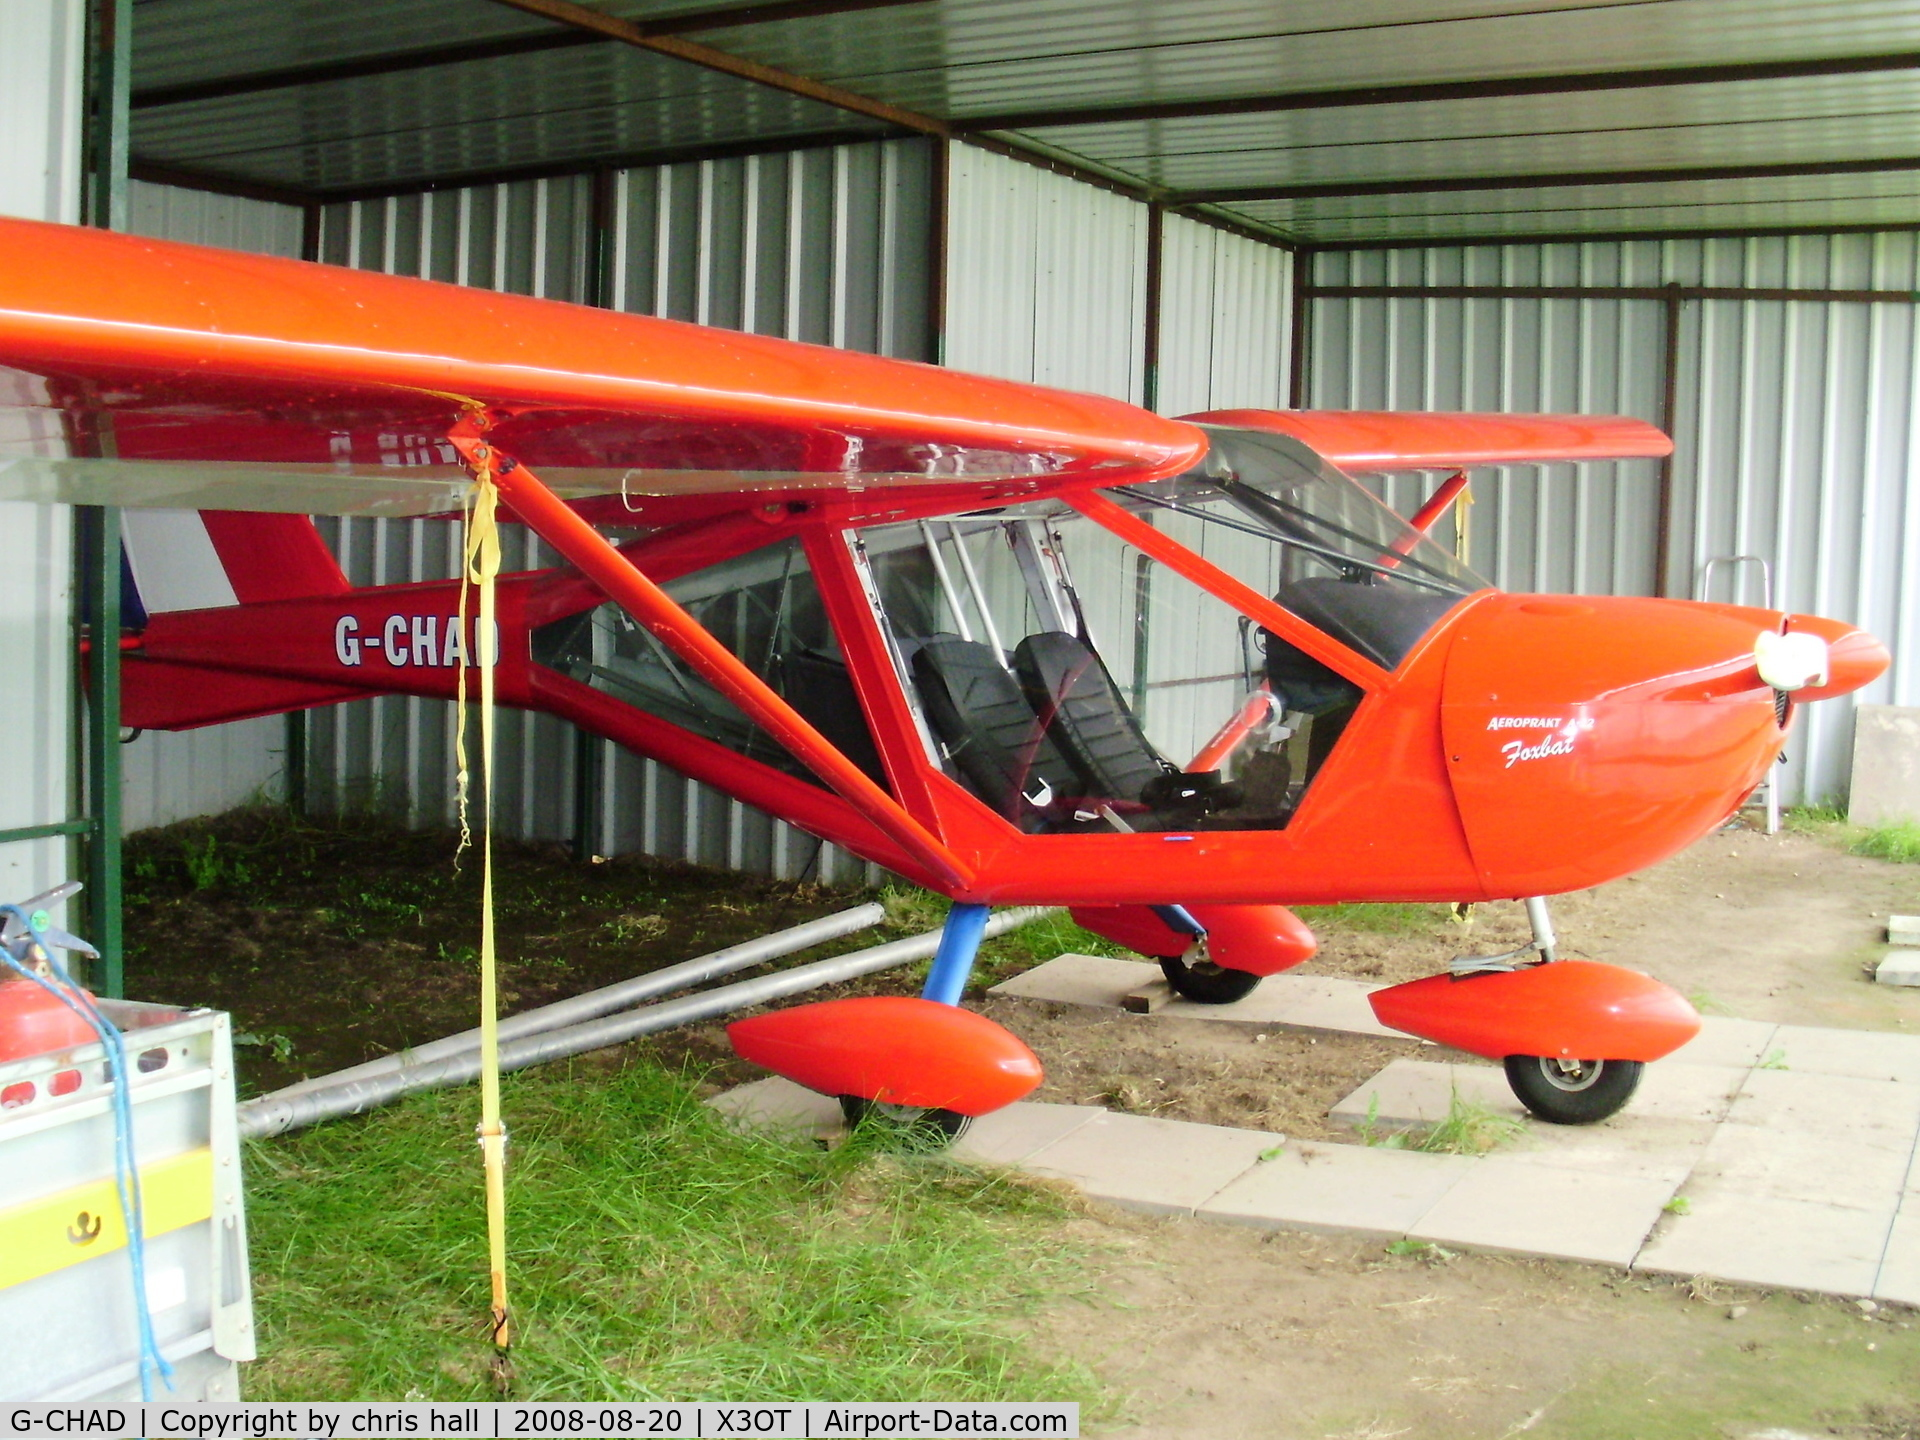 G-CHAD, 2002 Aeroprakt A-22 Foxbat C/N PFA 317-13909, Otherton Microlight Airfield